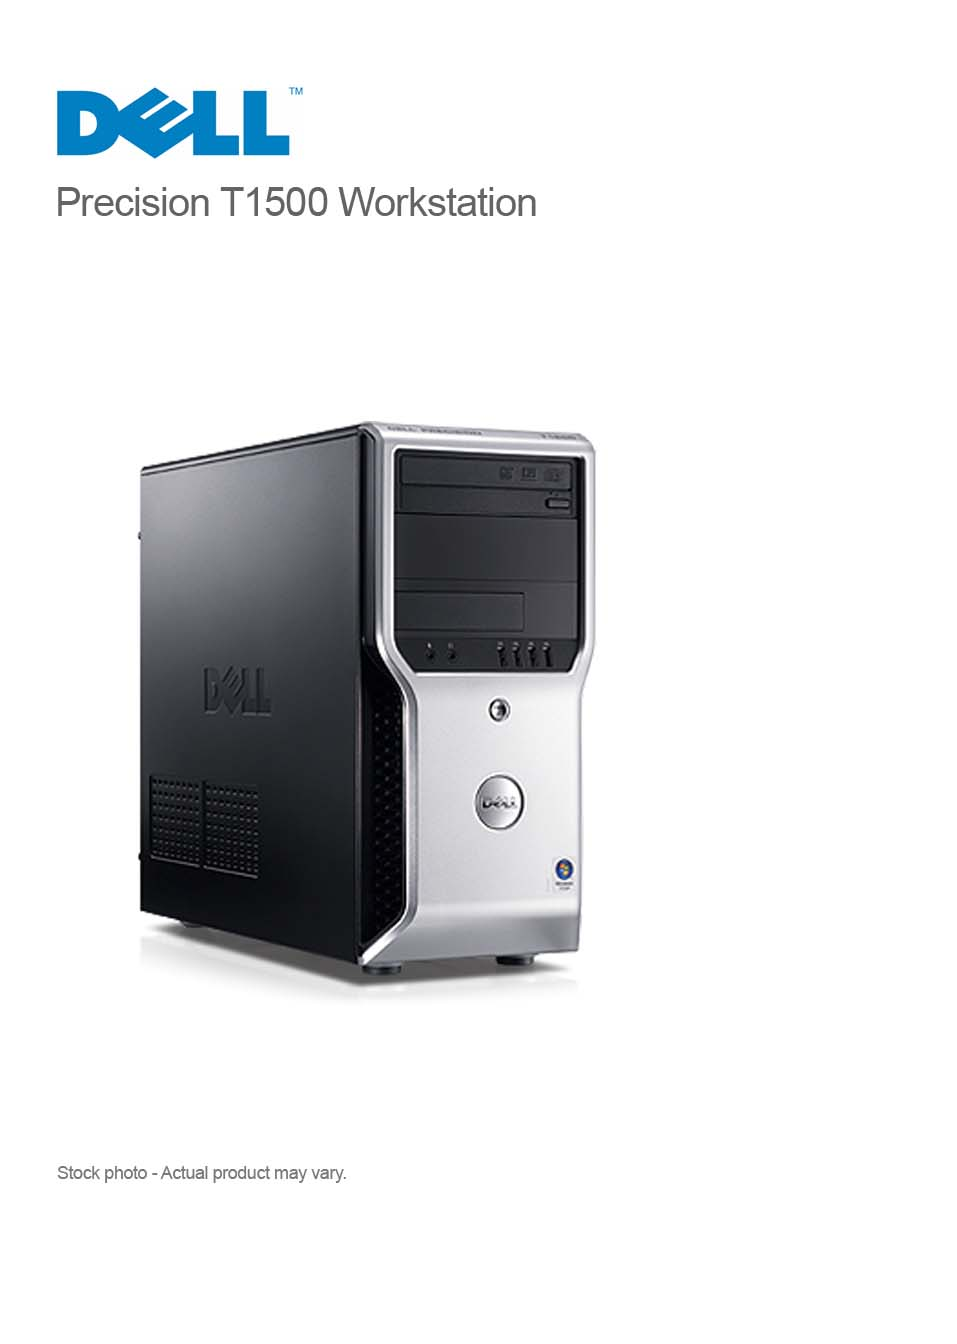 Dell Precision Workstation 380 Quick Reference Manual